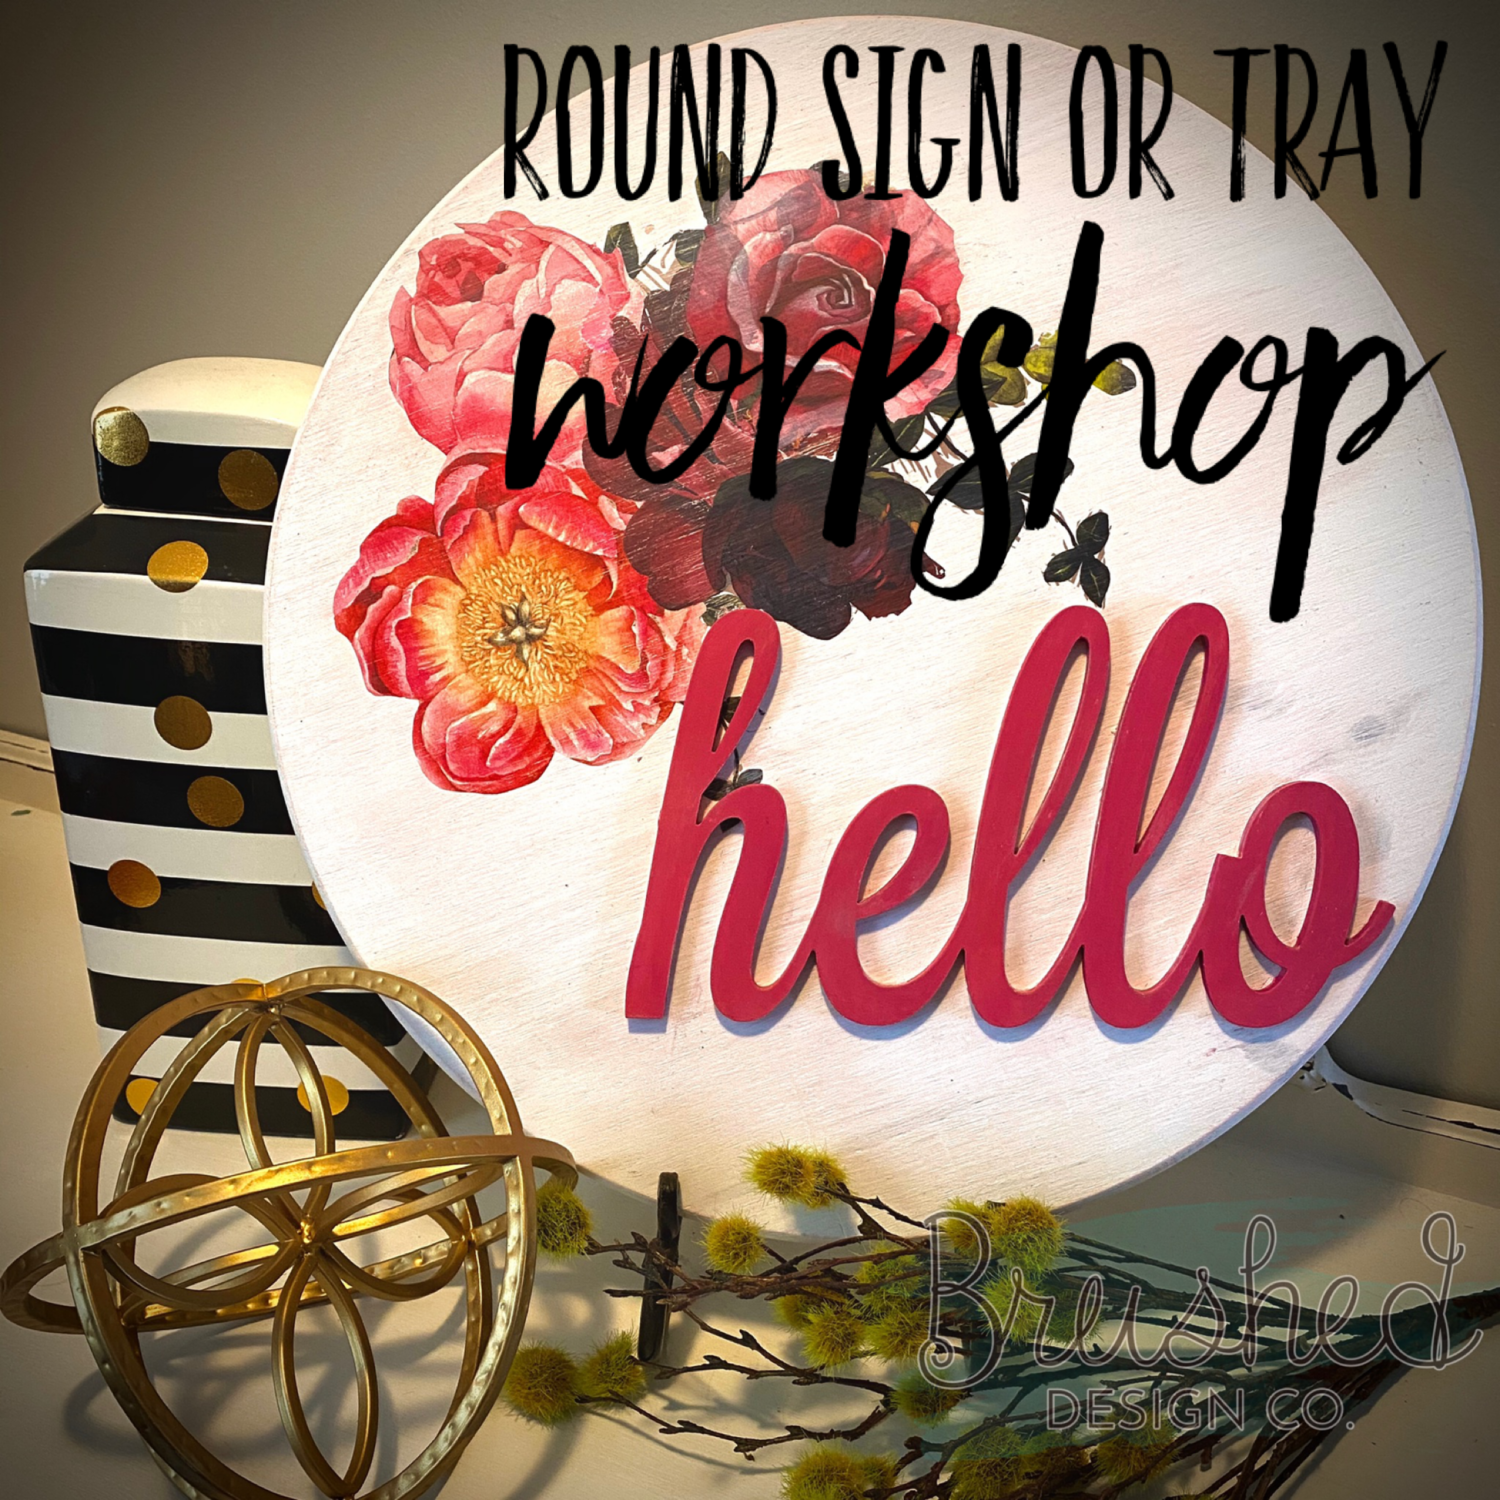 Round Sign or Tray Workshop - May 1st